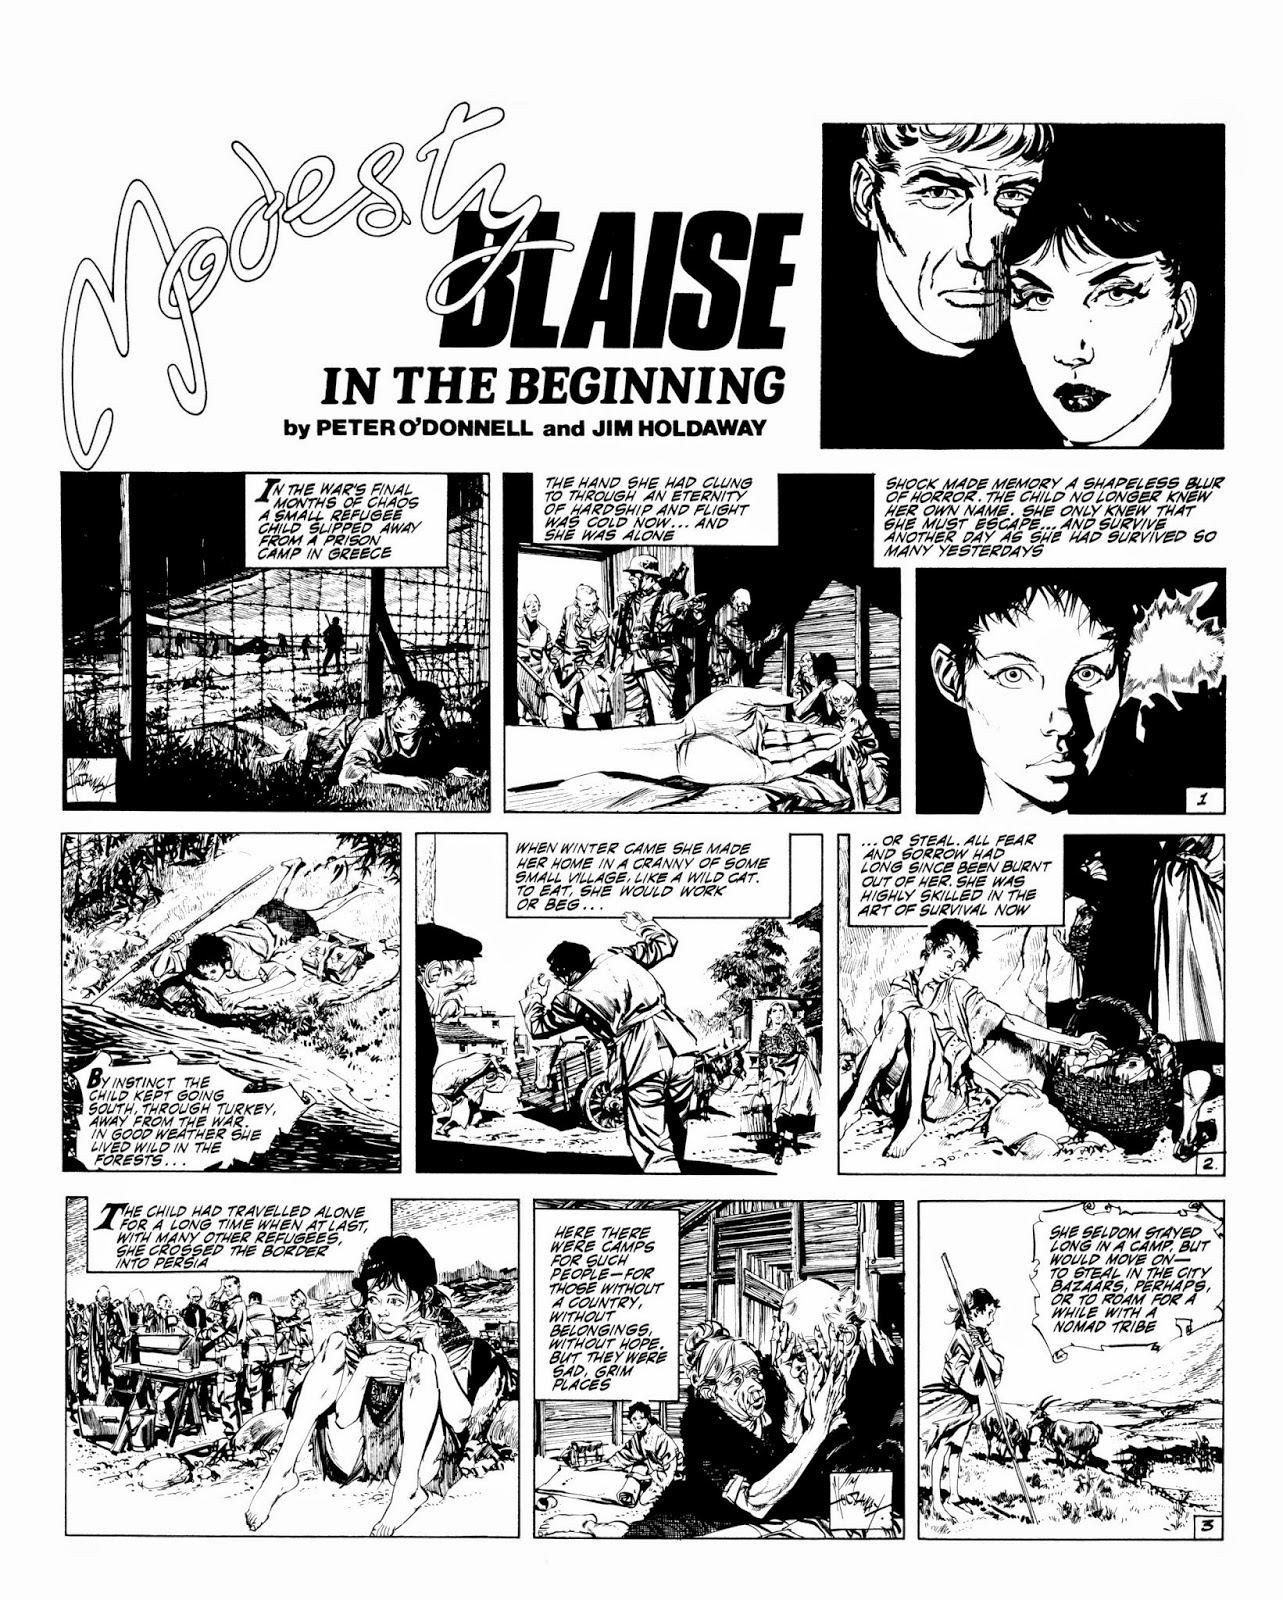 The Bronze Age Of Blogs Modesty Blaise Hi Hansithe Codes Do Point To An Electrical Problem With Transfer And Heres One My Favourites Early Adventures Mind Mrs Drake Co Creators Peter Odonnell Jim Holdaway Had Almost Symbiotic